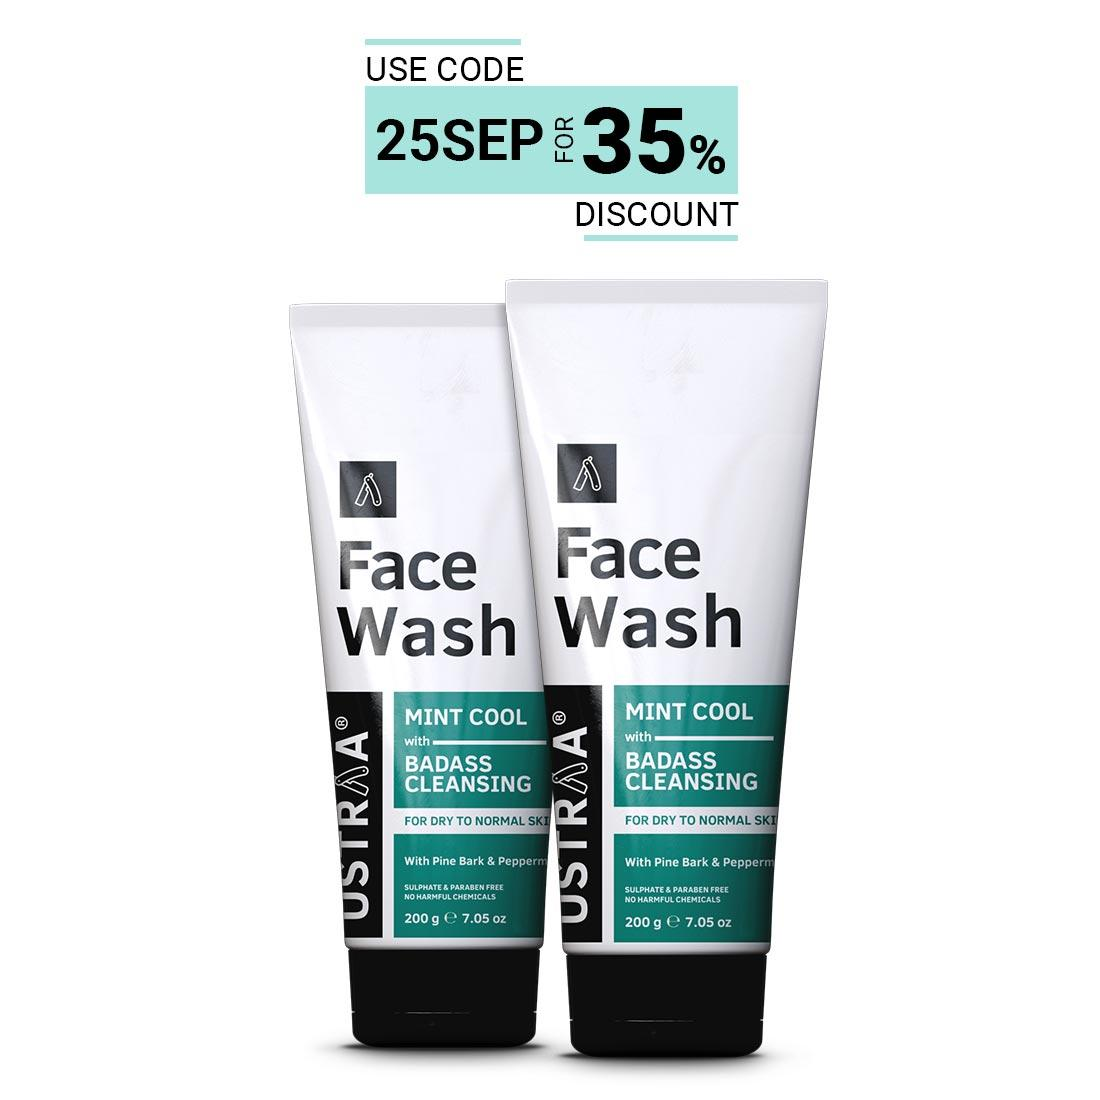 Face Wash - Dry Skin (Mint Cool) - Set of 2